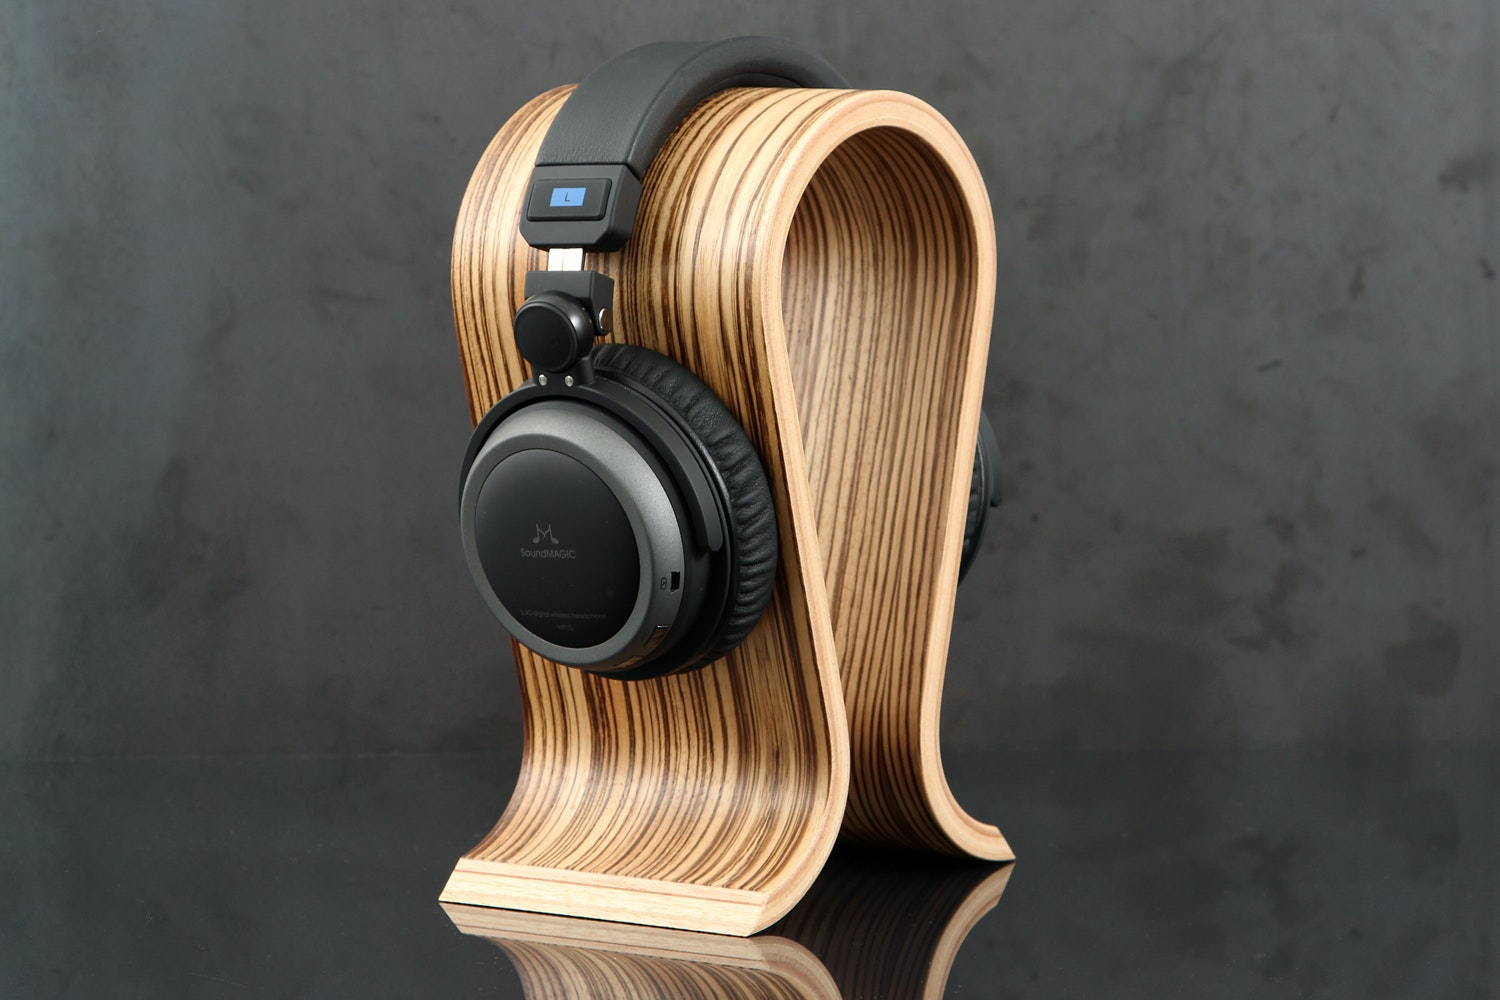 Sieveking Omega Headphone Stand